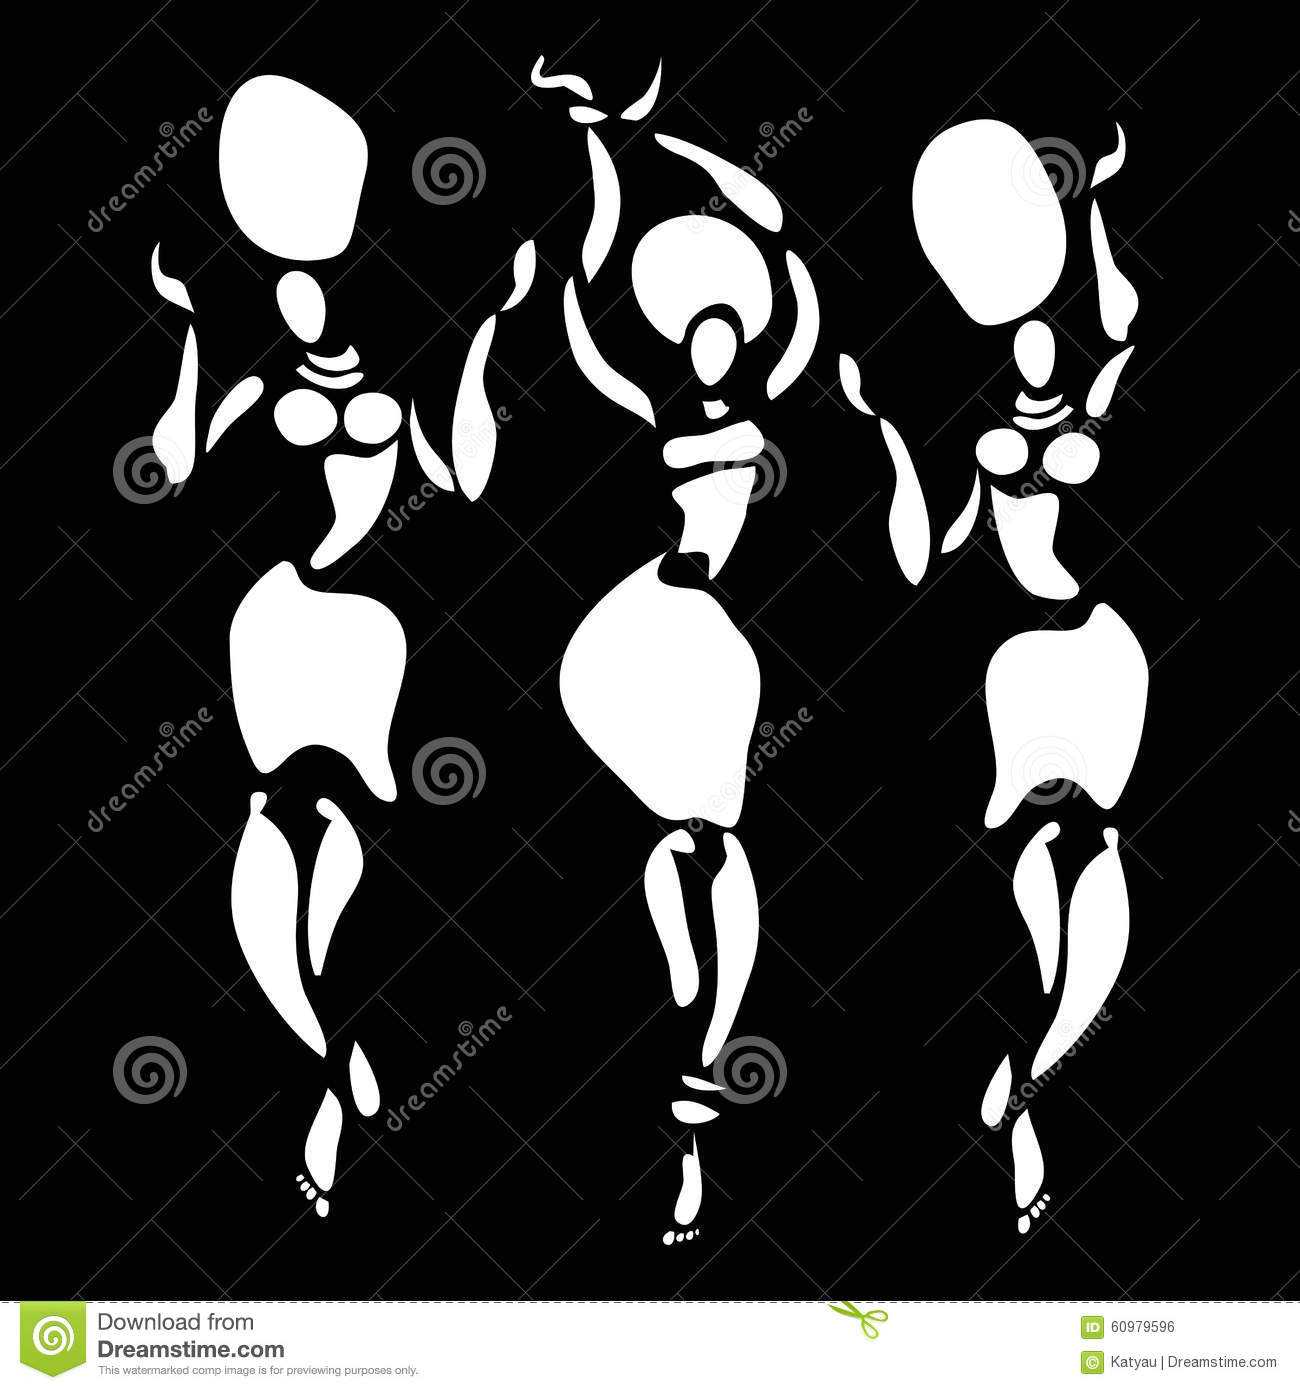 Figures of african dancers. Vector fashion illustration.